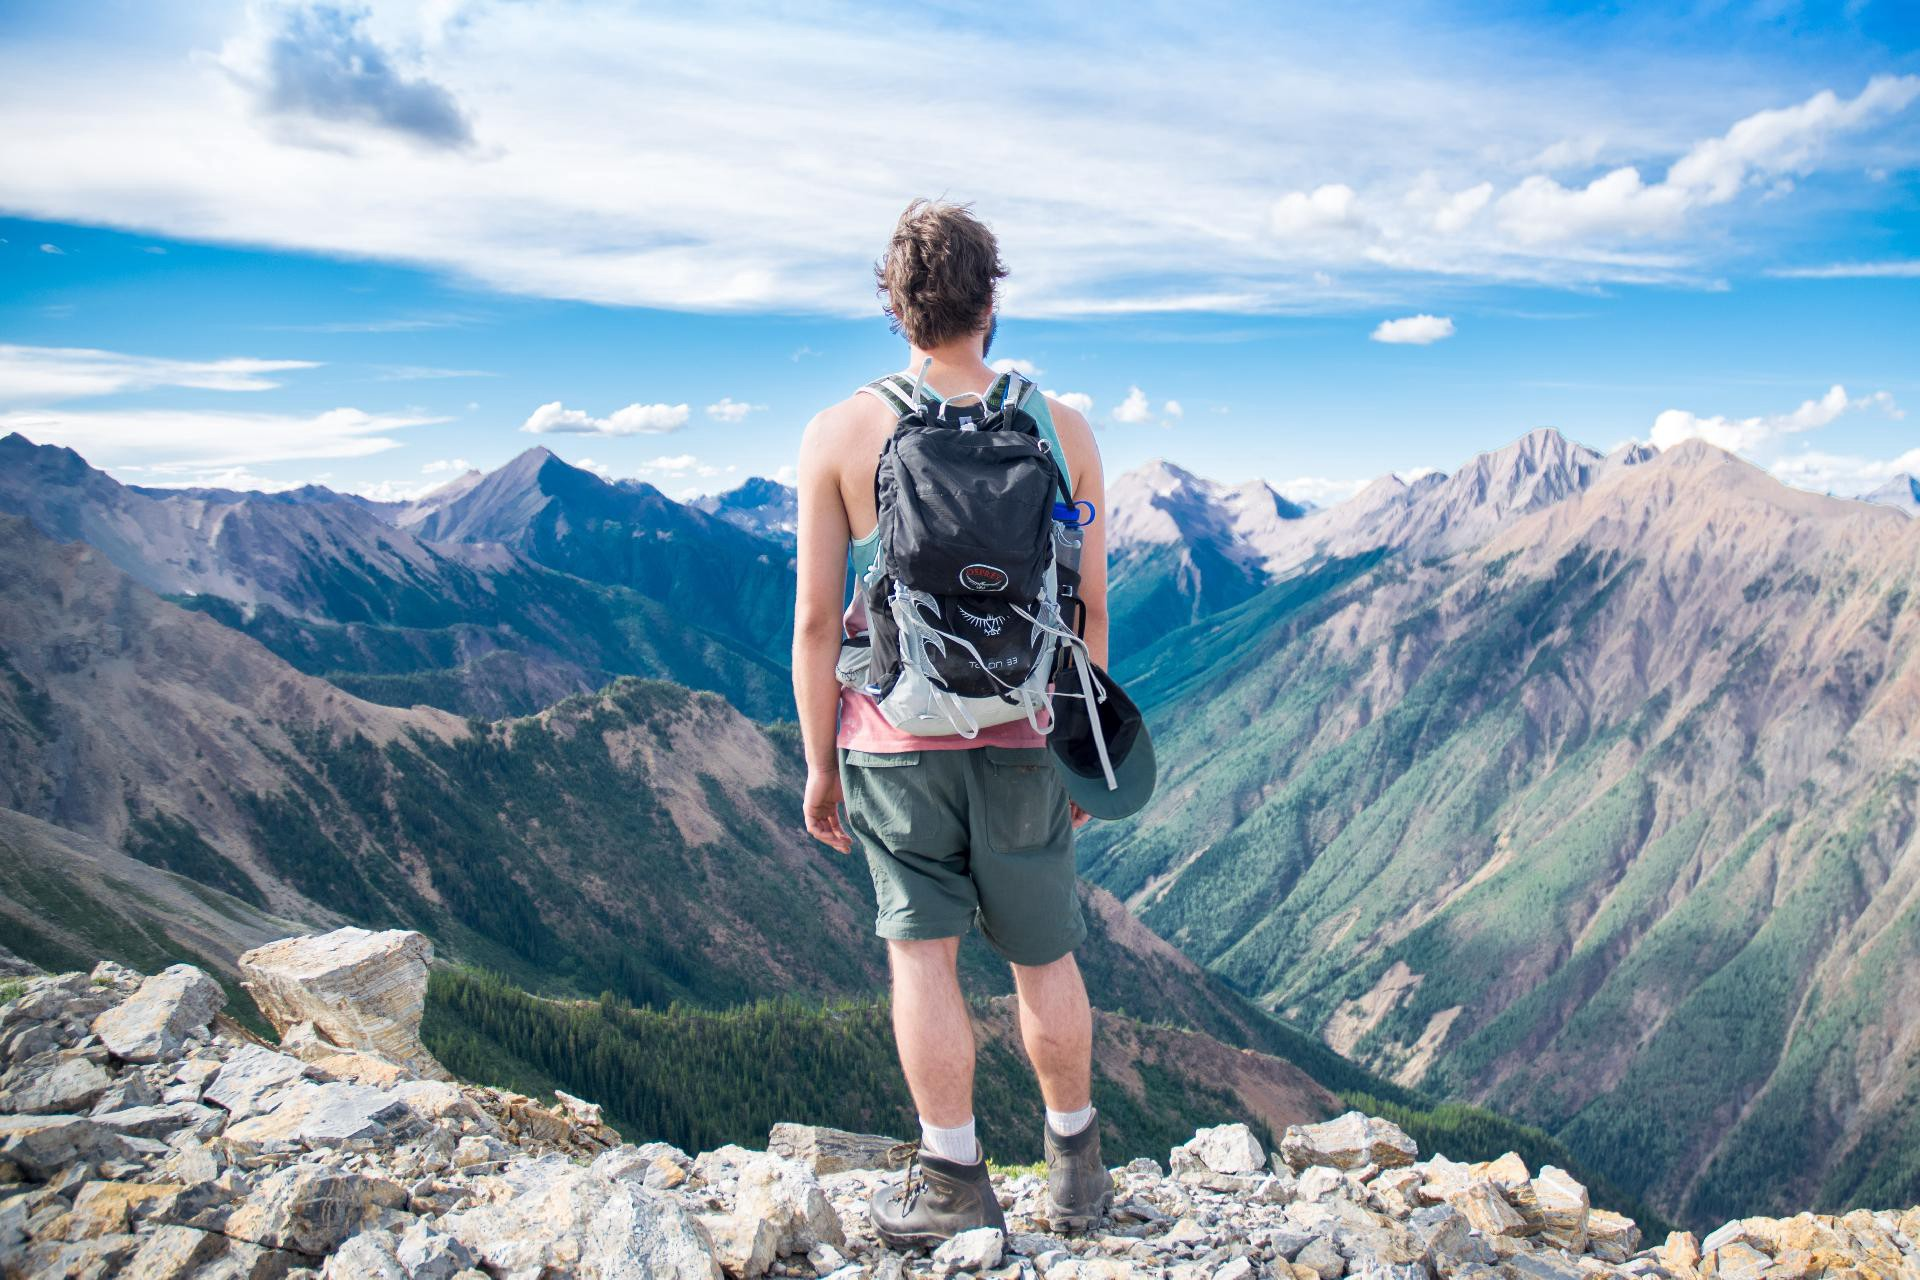 Man standing at the edge of a mountain looking at the mountain ranges and peaks around - trying to look at the big picture